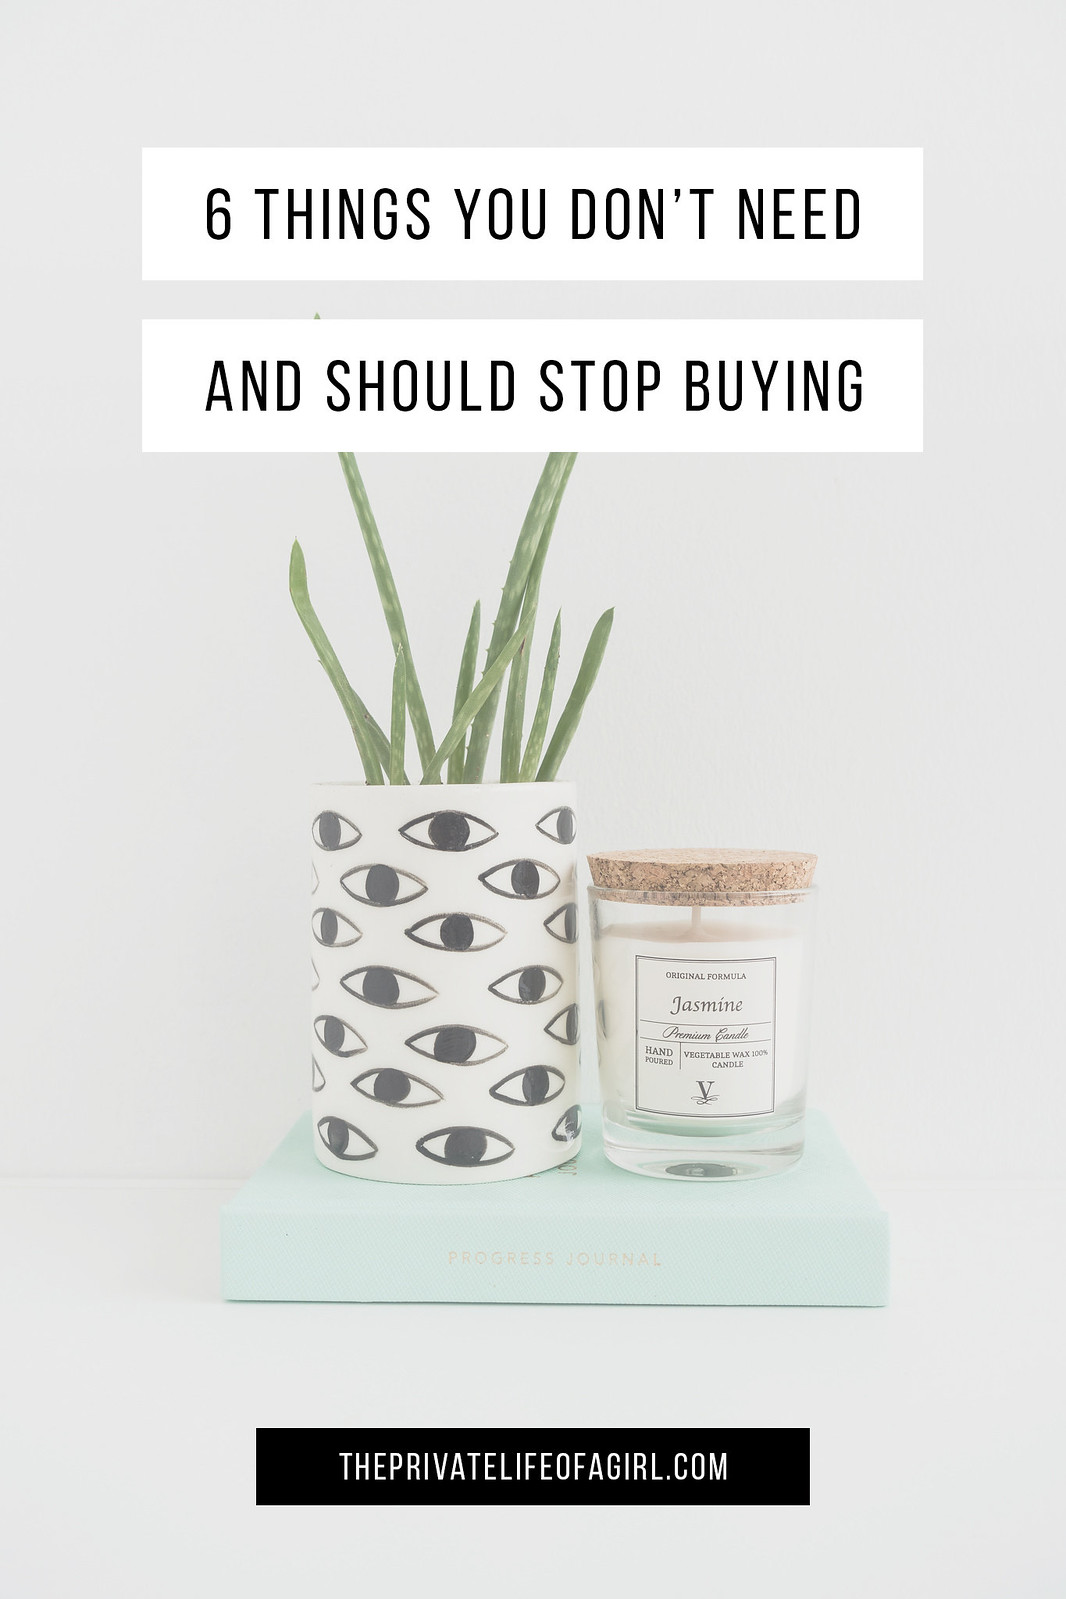 6 Things You Don't Need And Should Stop Buying